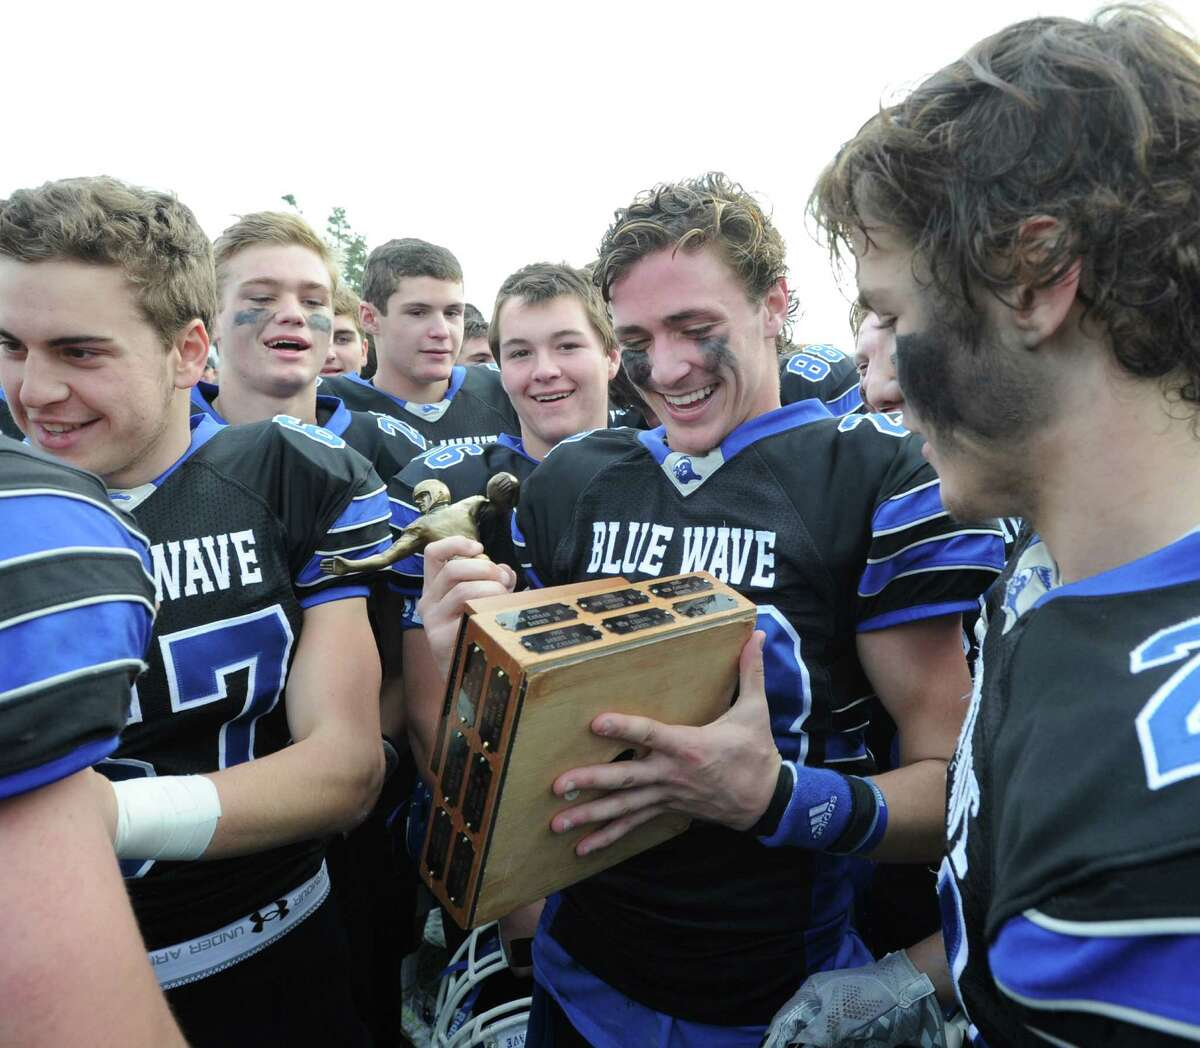 FCIAC Championship football game bewtween New Canaan High School and Darien High School at Stamford High School's Boyle Stadium, Stamford, Conn., Thursday, Nov. 26, 2015. Darien took the championship Turkey Bowl title over New Canaan by a score of 28-21.